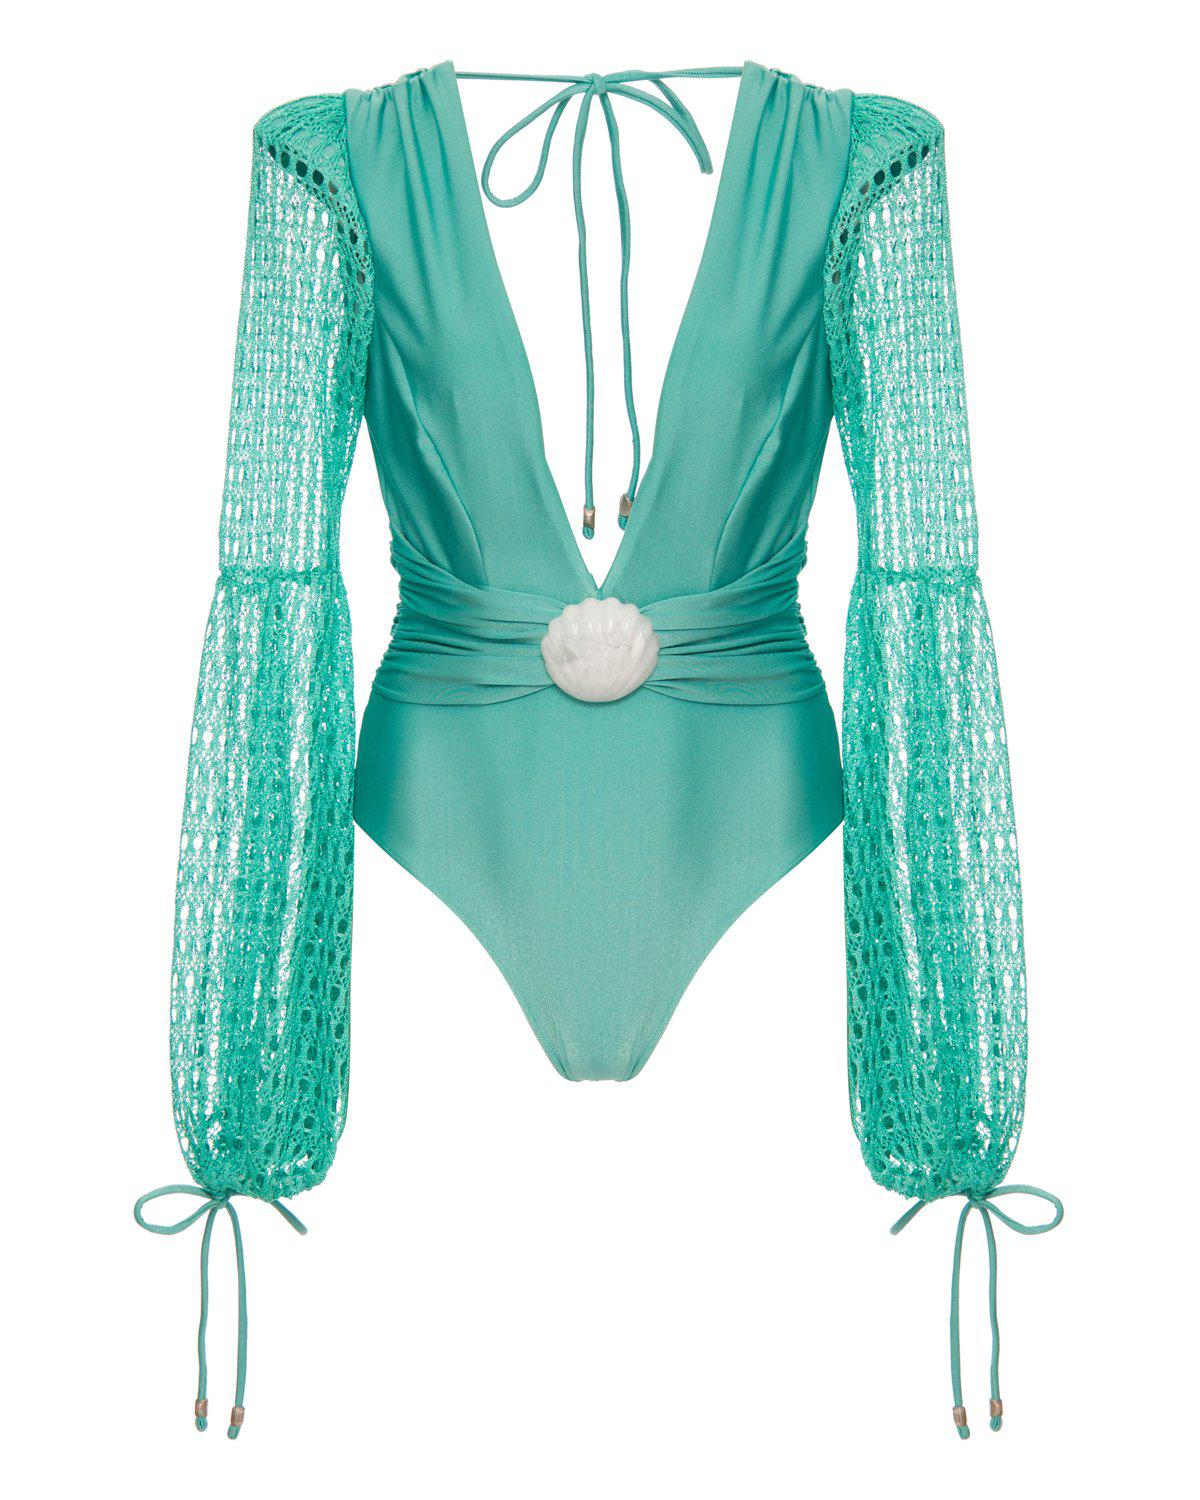 NETTED SLEEVE SWIMSUIT 1